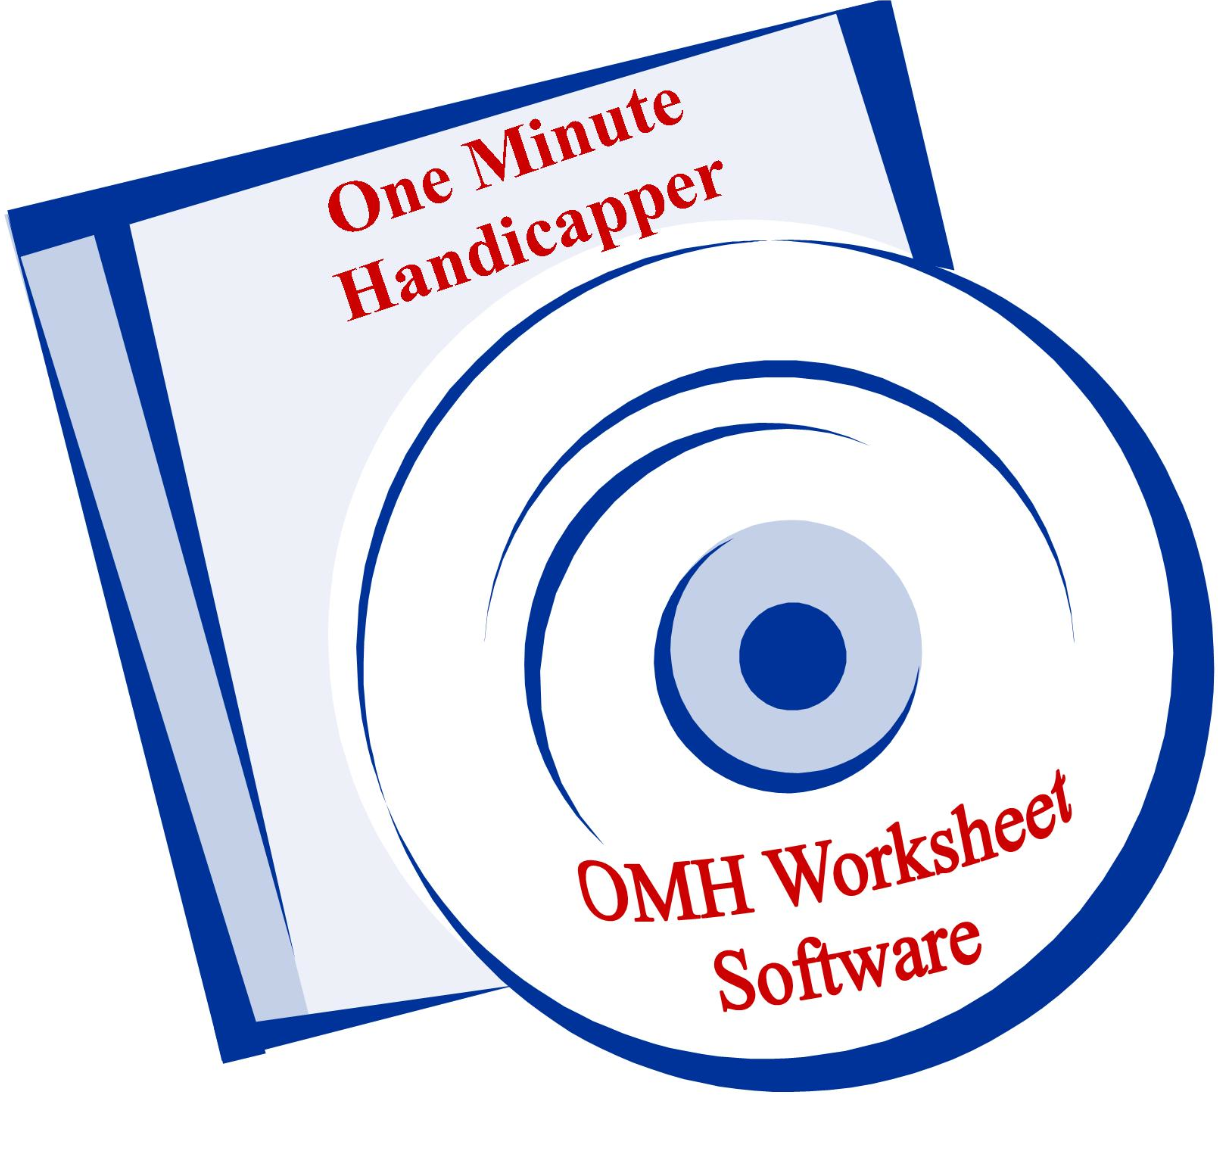 The One Minute Handicapper Software